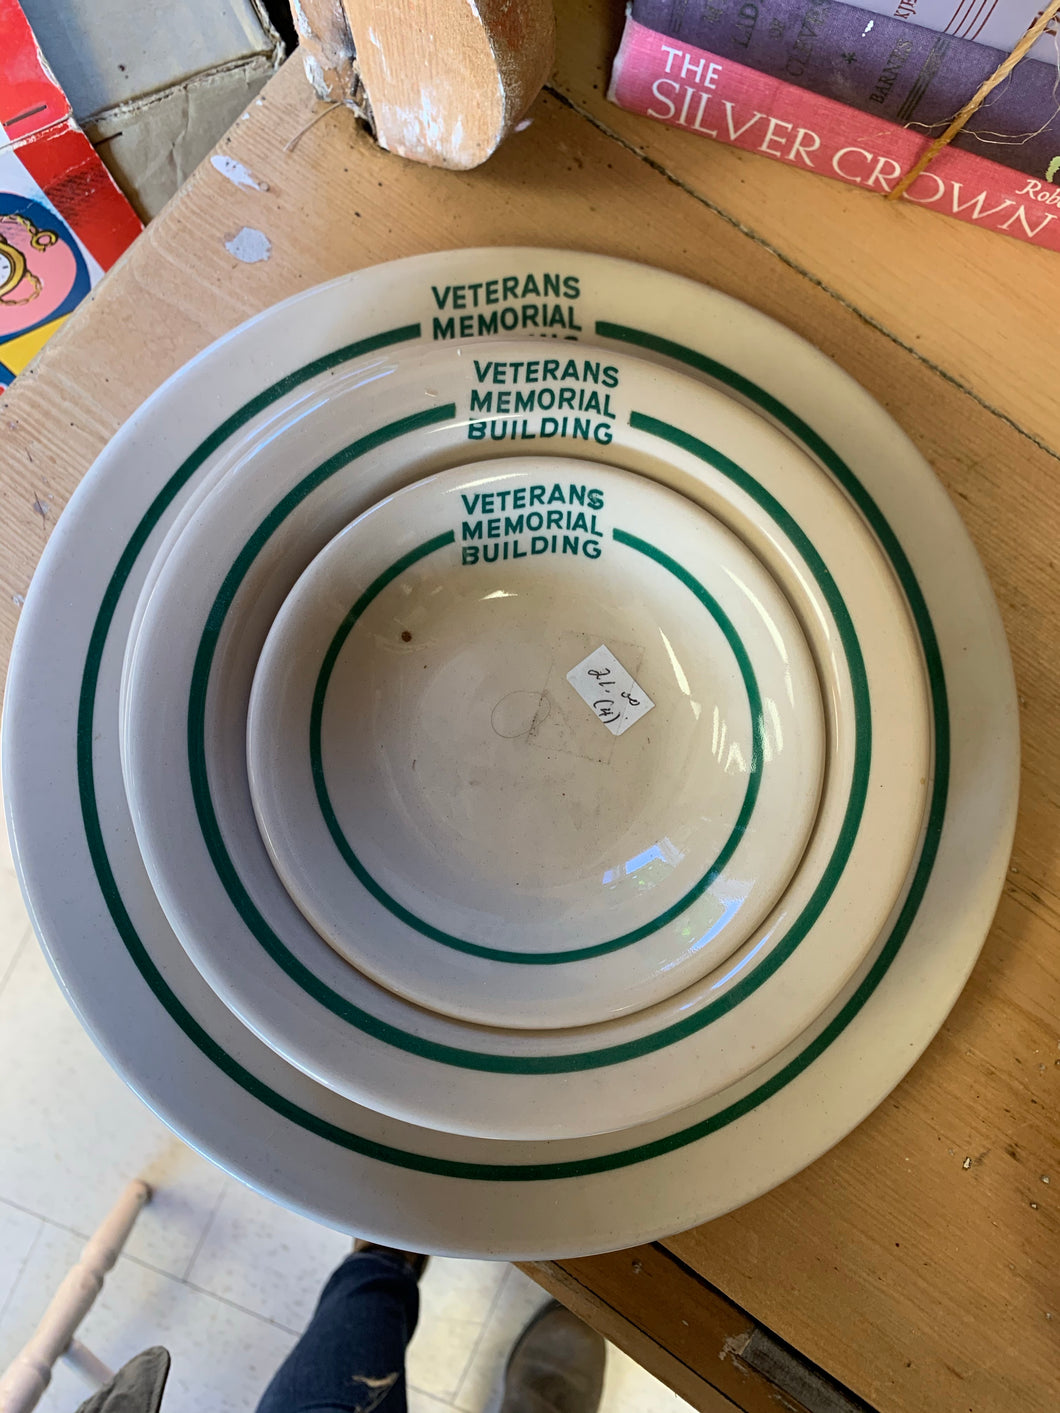 Veteran Memorial Building 4 Piece Dish Set